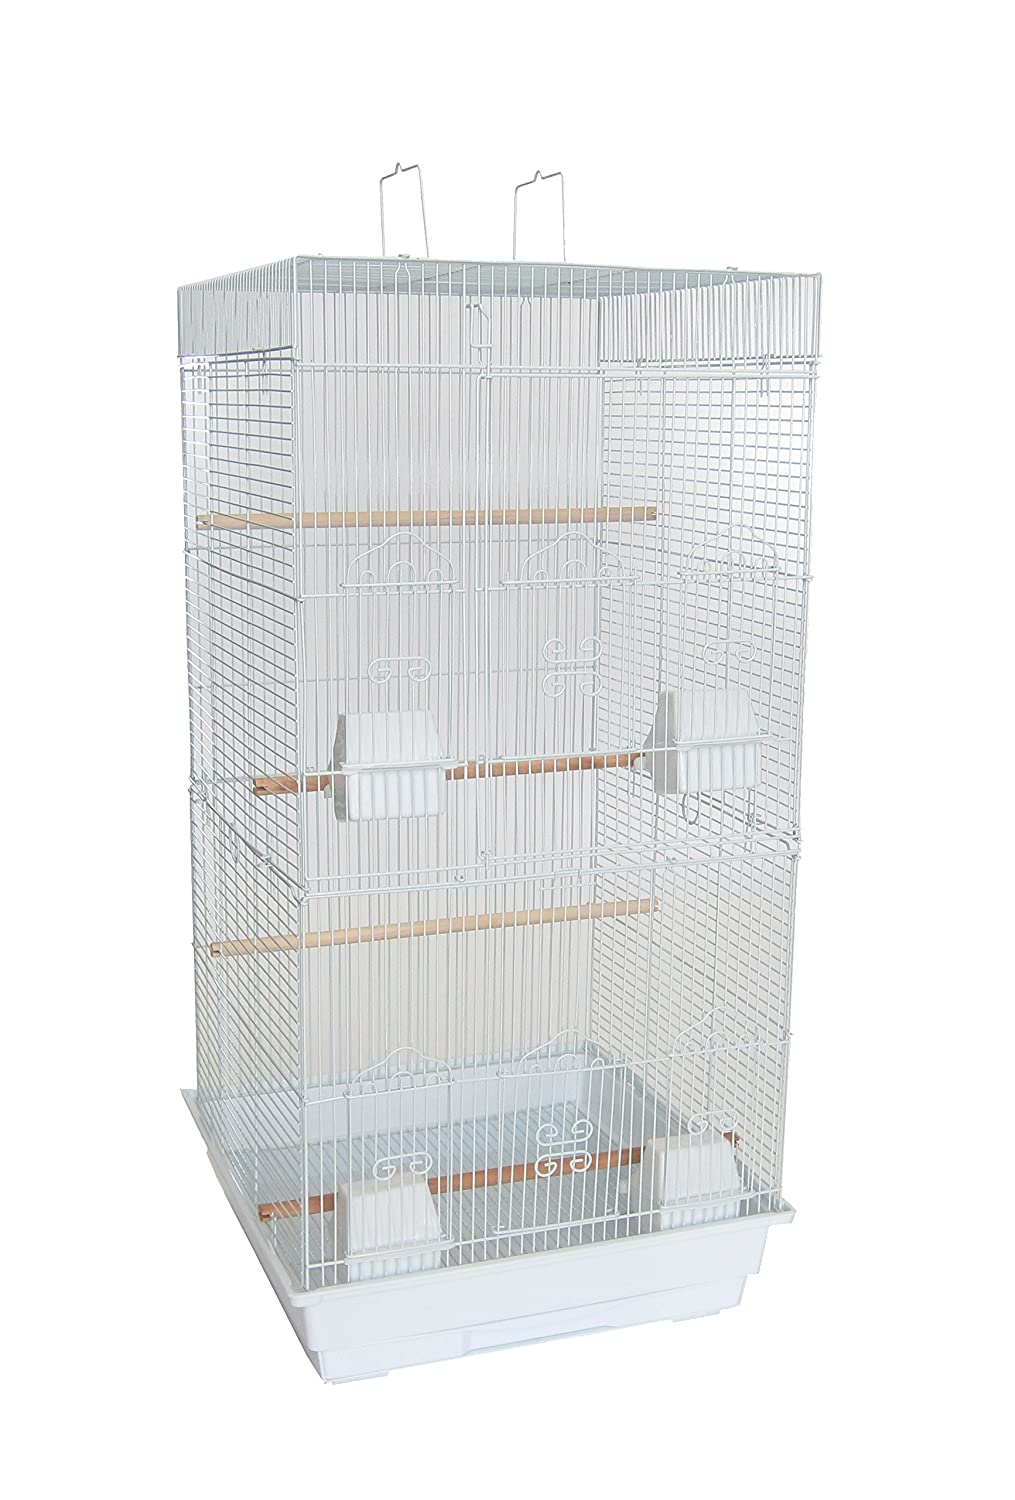 YML A6924 3/8-Inch Bar Spacing Tall Flat Top Small Bird Cage, 18-Inch by 18-Inch, Black A6924BLK